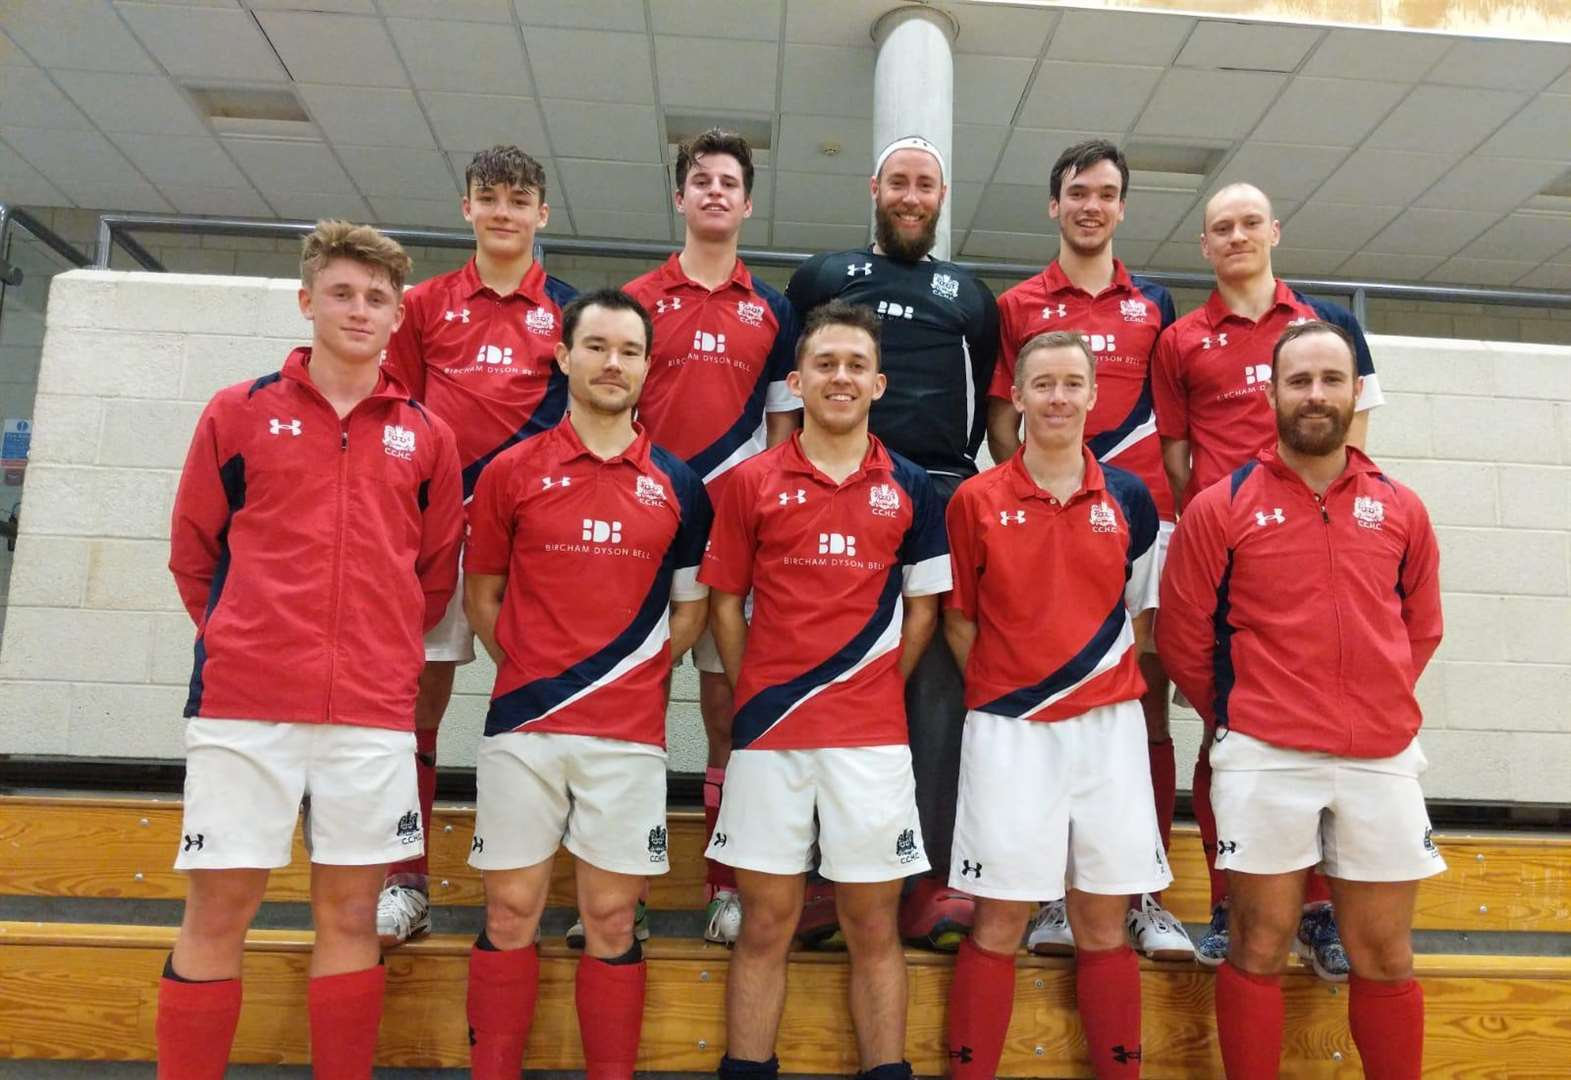 Promotion joy for Cambridge City Hockey Club